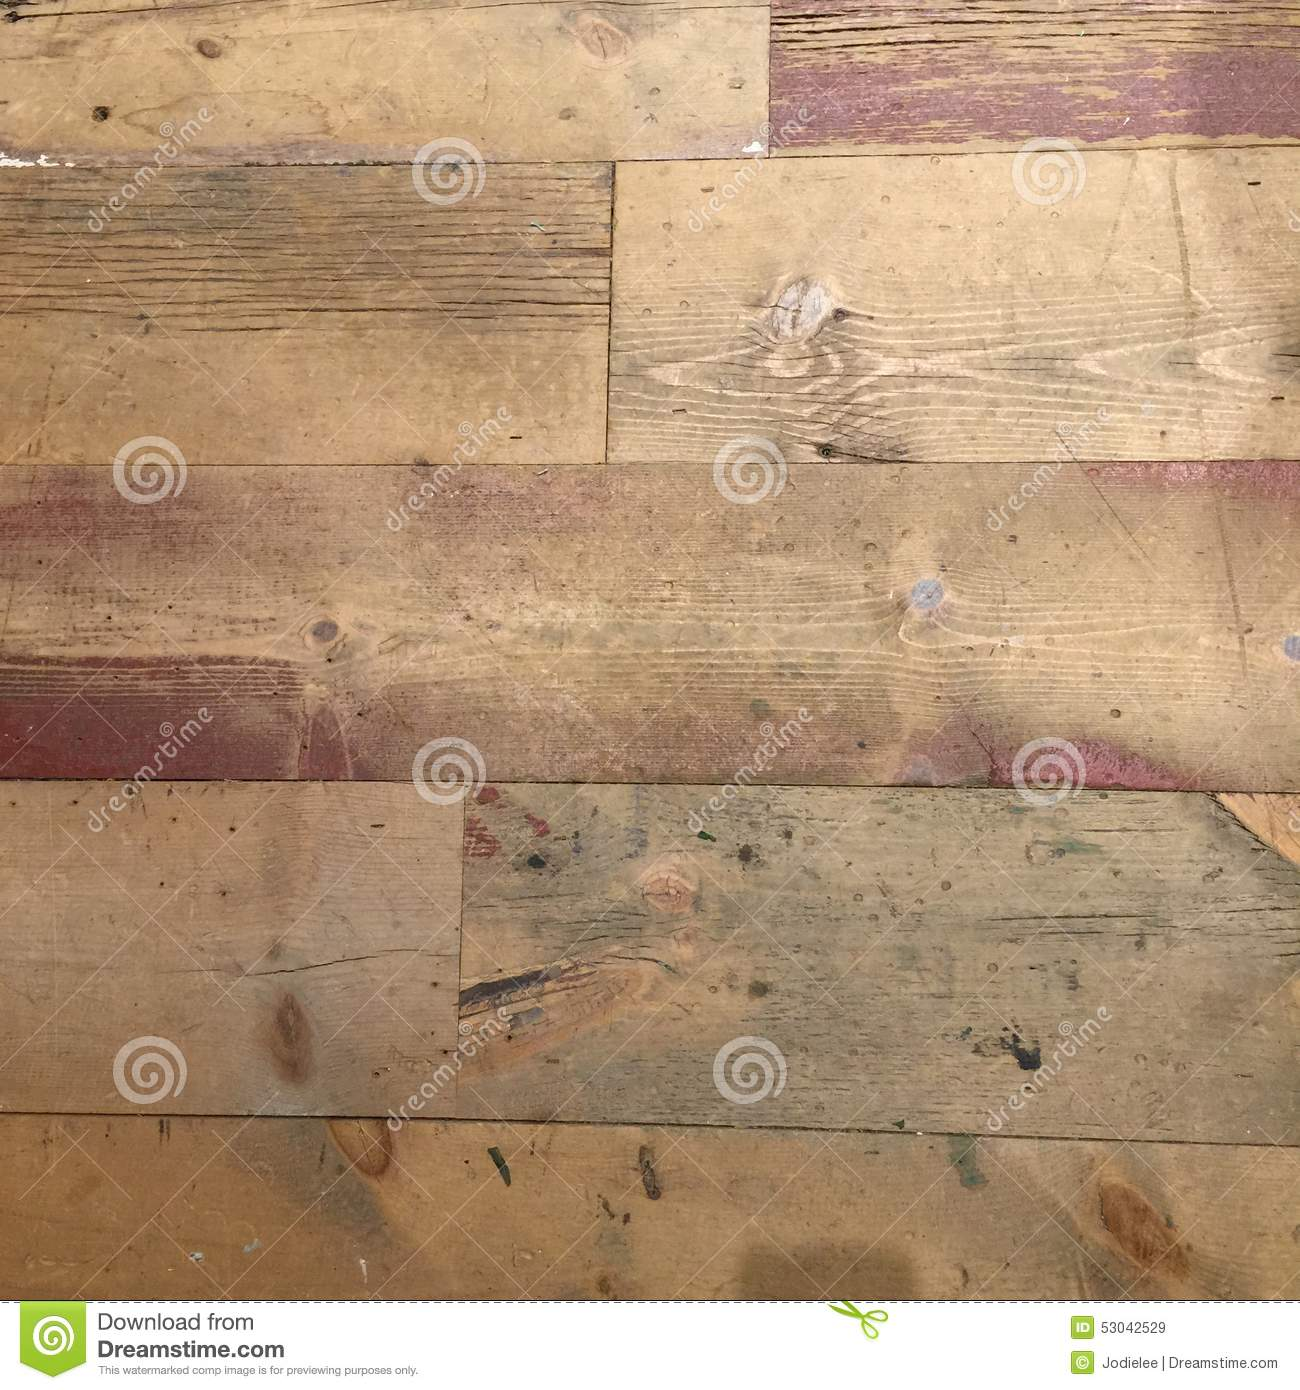 Grungy Distressed Wooden Flooring Texture With White Paint Stock Image Image Of Antique Flooring 53042529